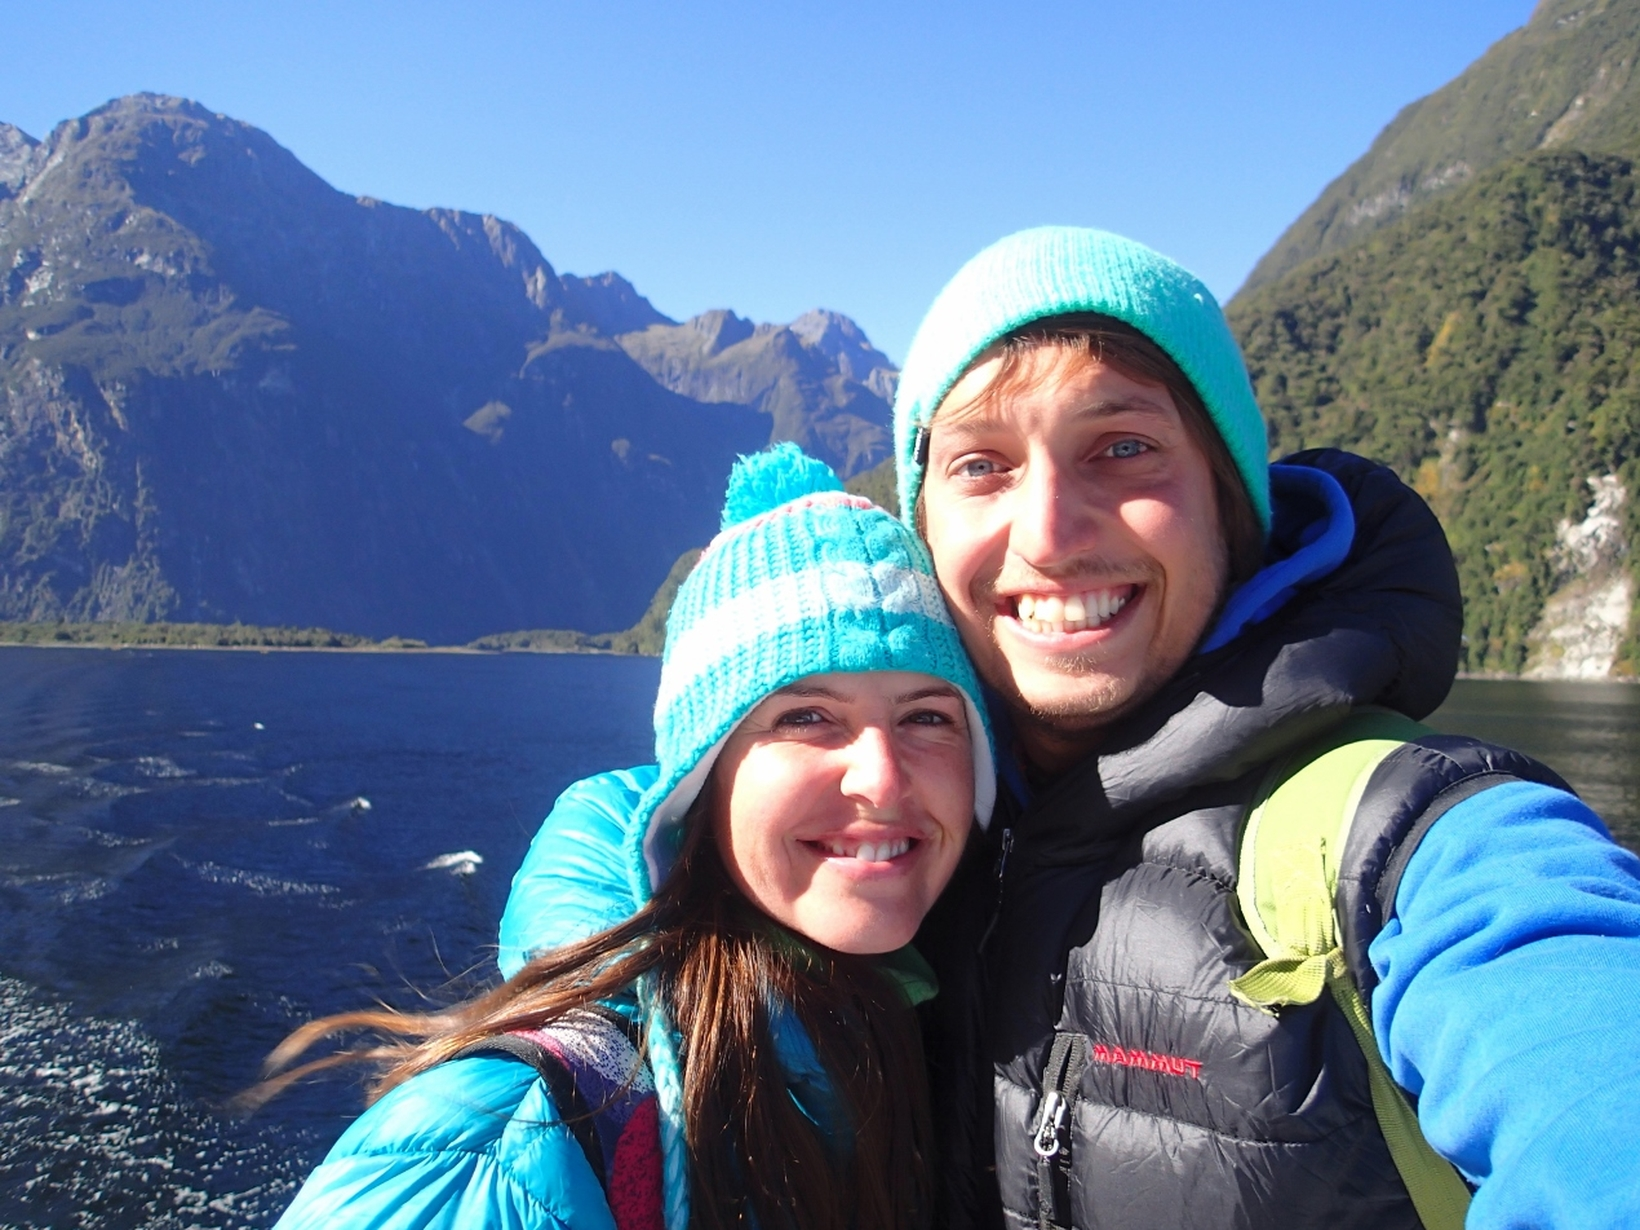 Claire & Daniel from Santiago, Chile